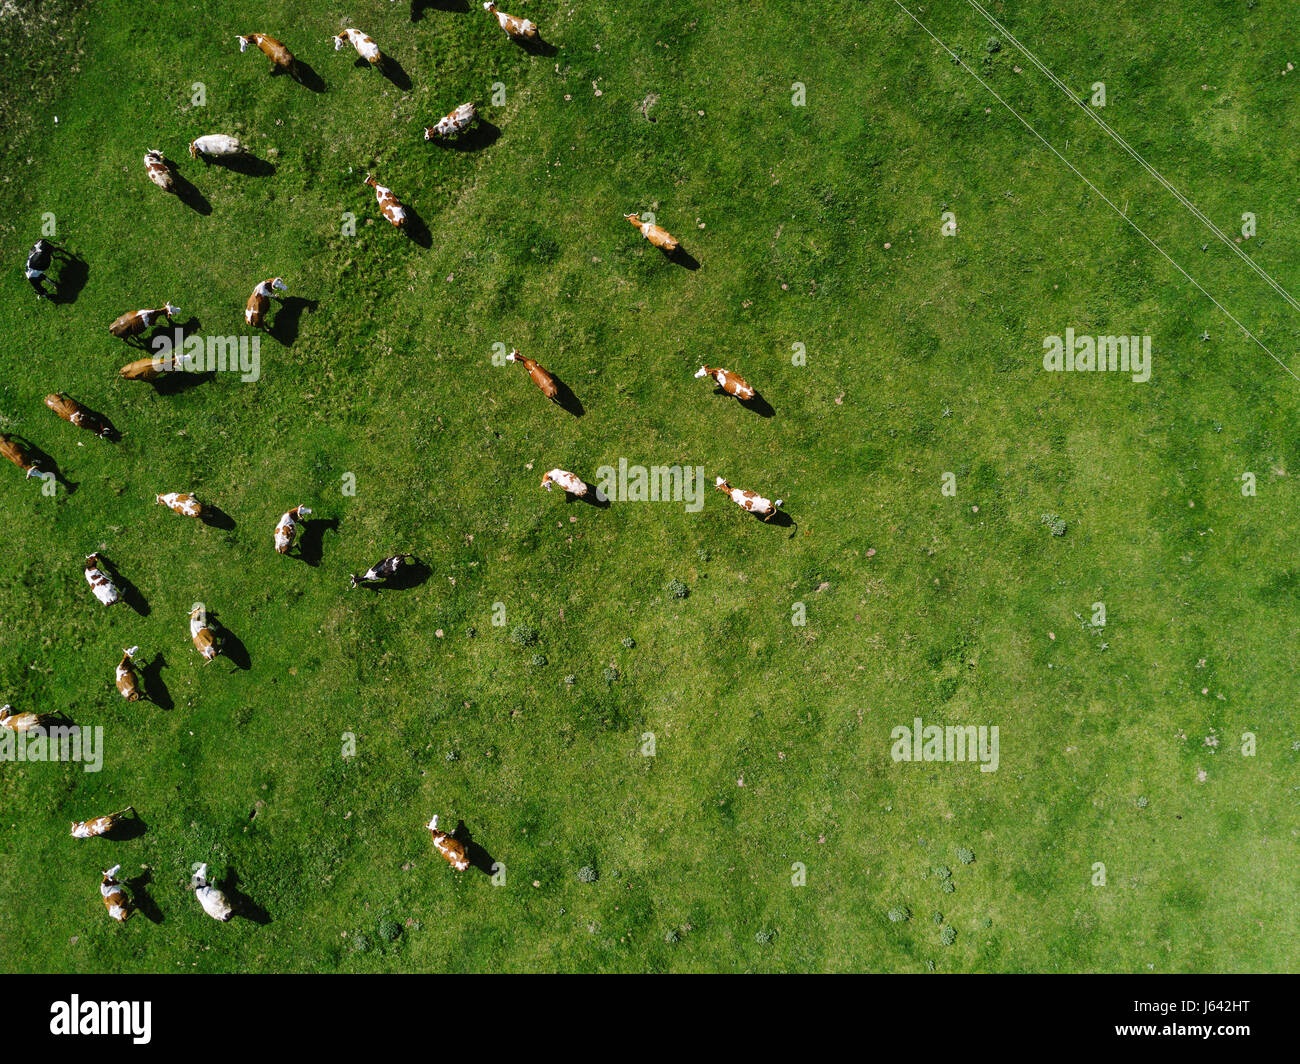 Aerial view of cows herd grazing on pasture field, top view drone pov - Stock Image